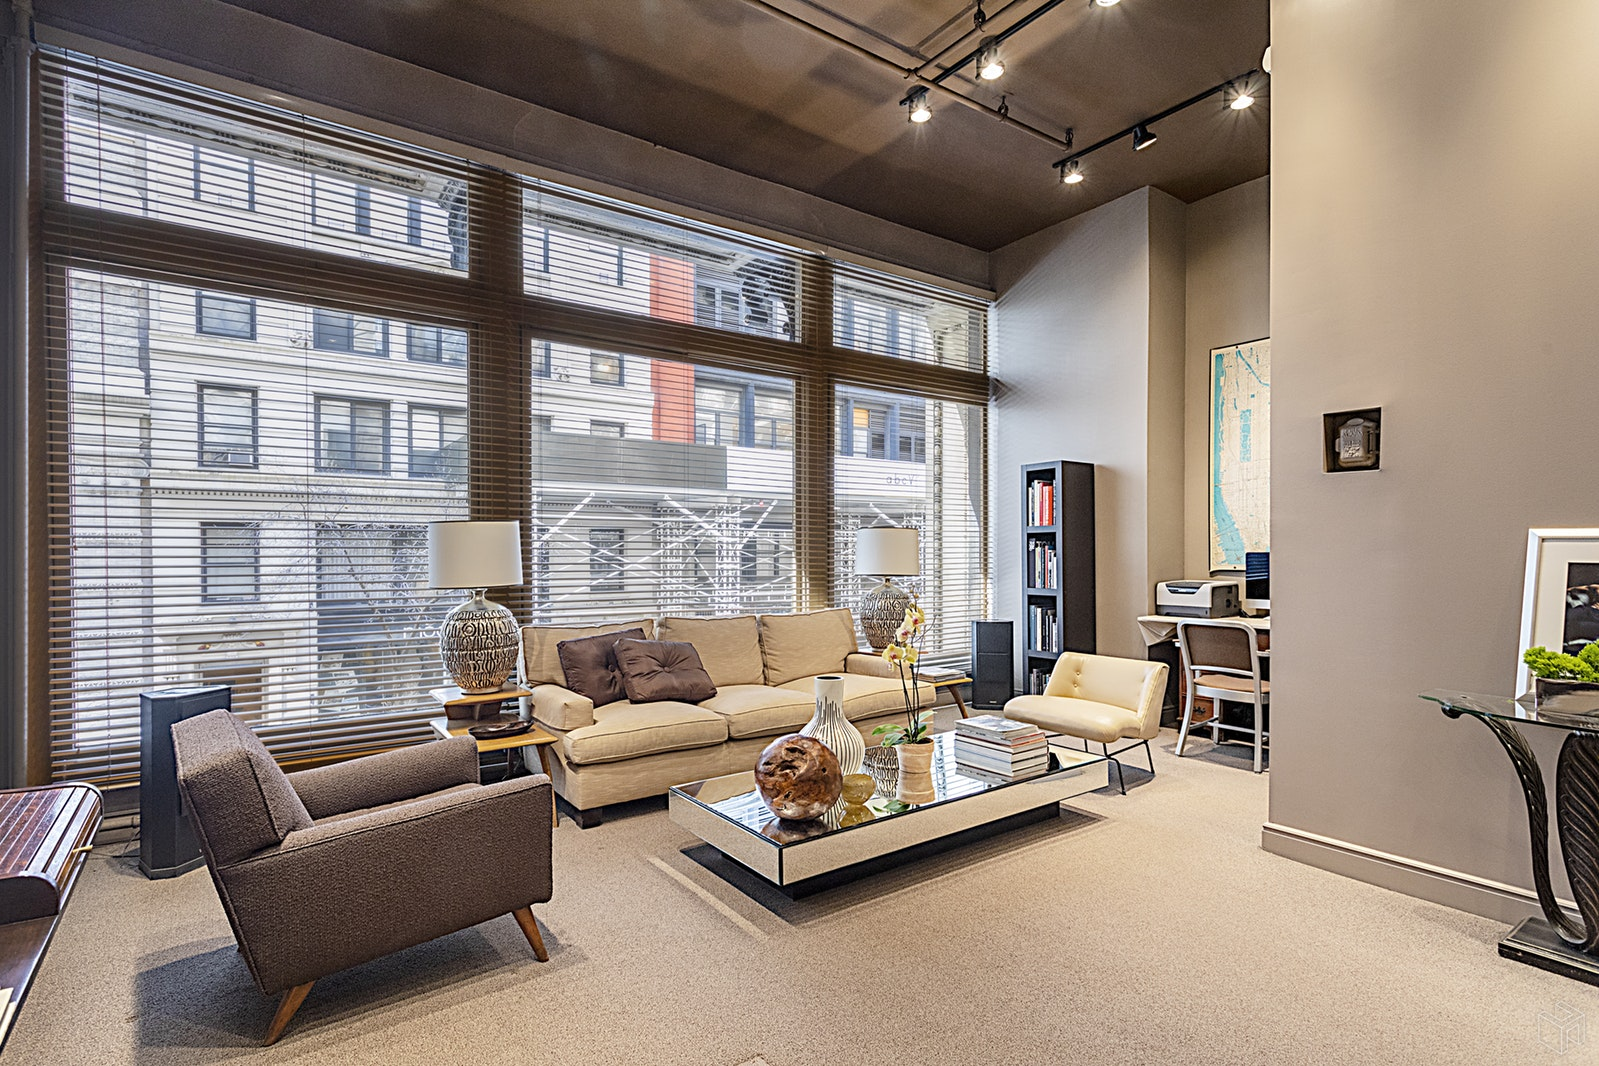 39 East 19th Street 2, Flatiron, NYC, 10003, $1,595,000, Property For Sale, Halstead Real Estate, Photo 2